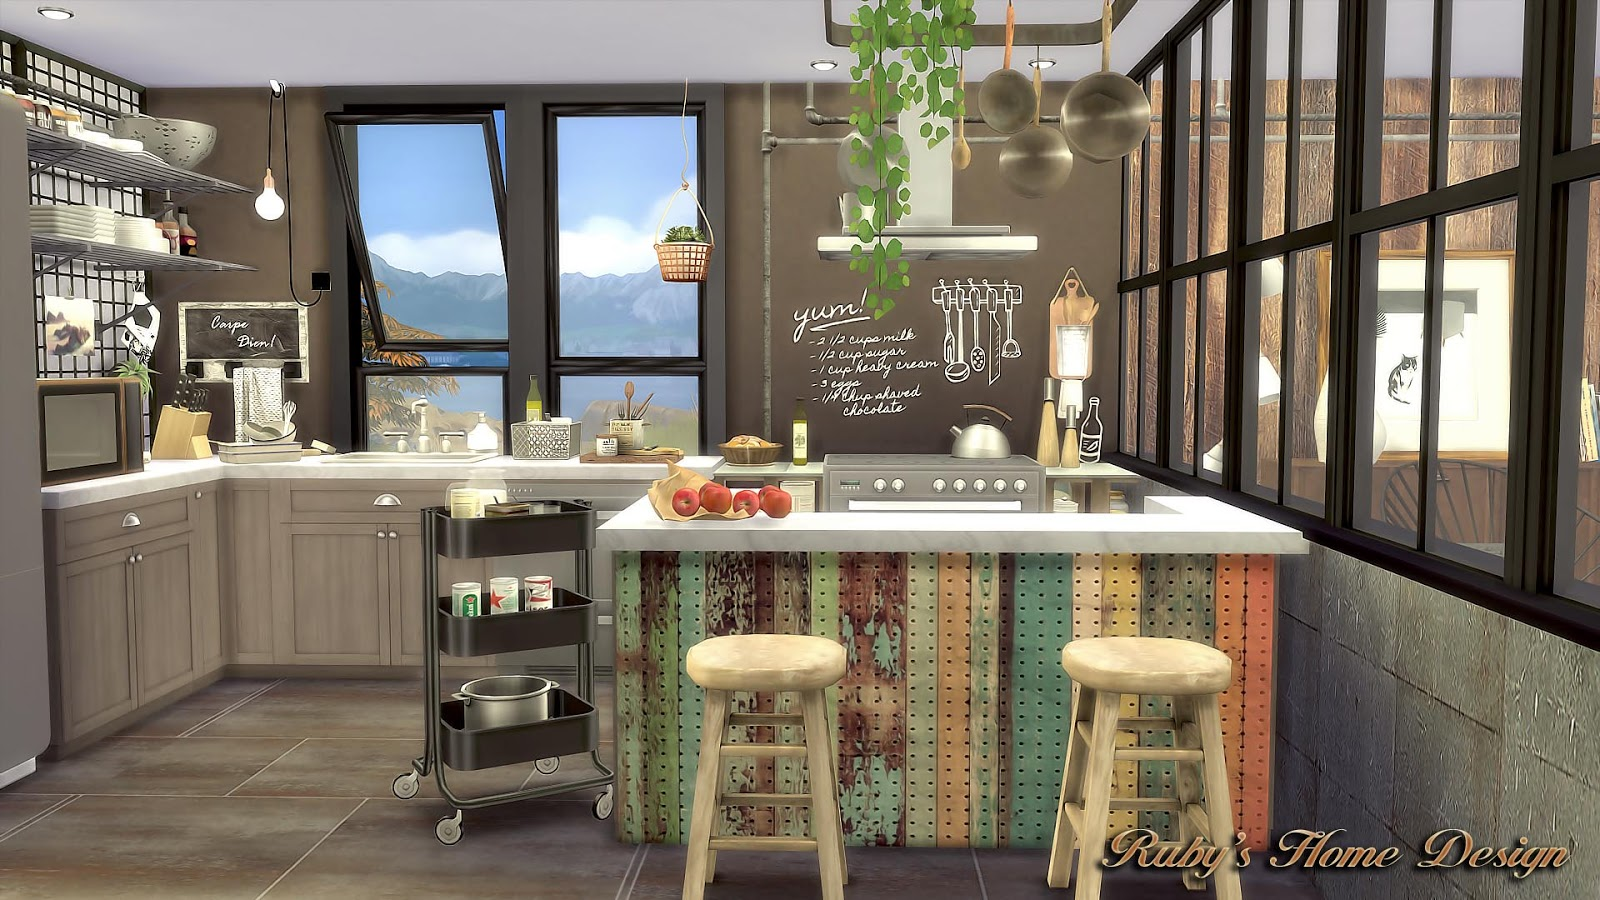 sims 4 cc's - the best: mid century industrial loft by ruby red, Badezimmer ideen